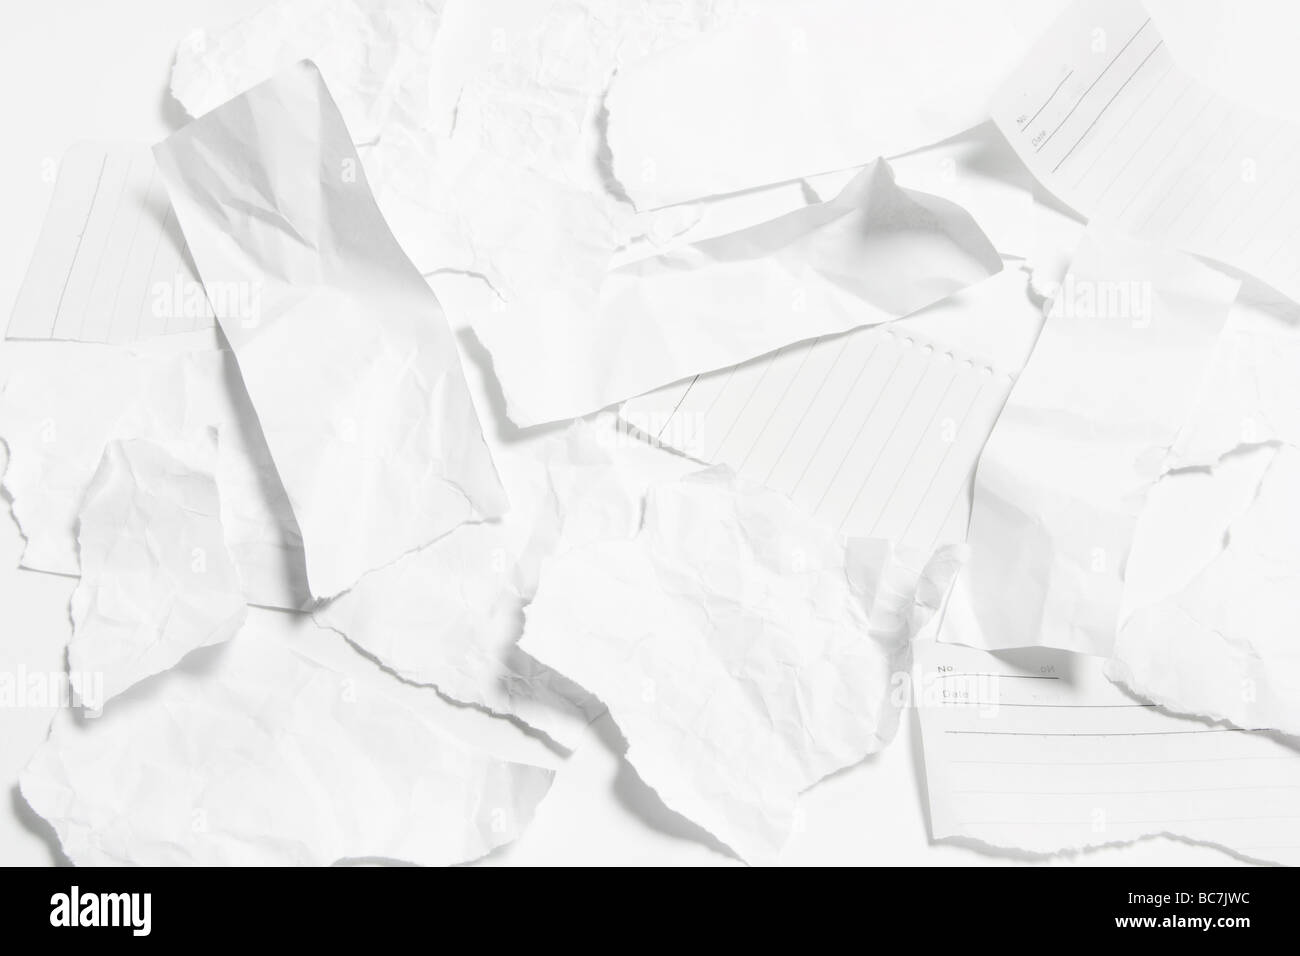 Torn Pieces of Paper - Stock Image